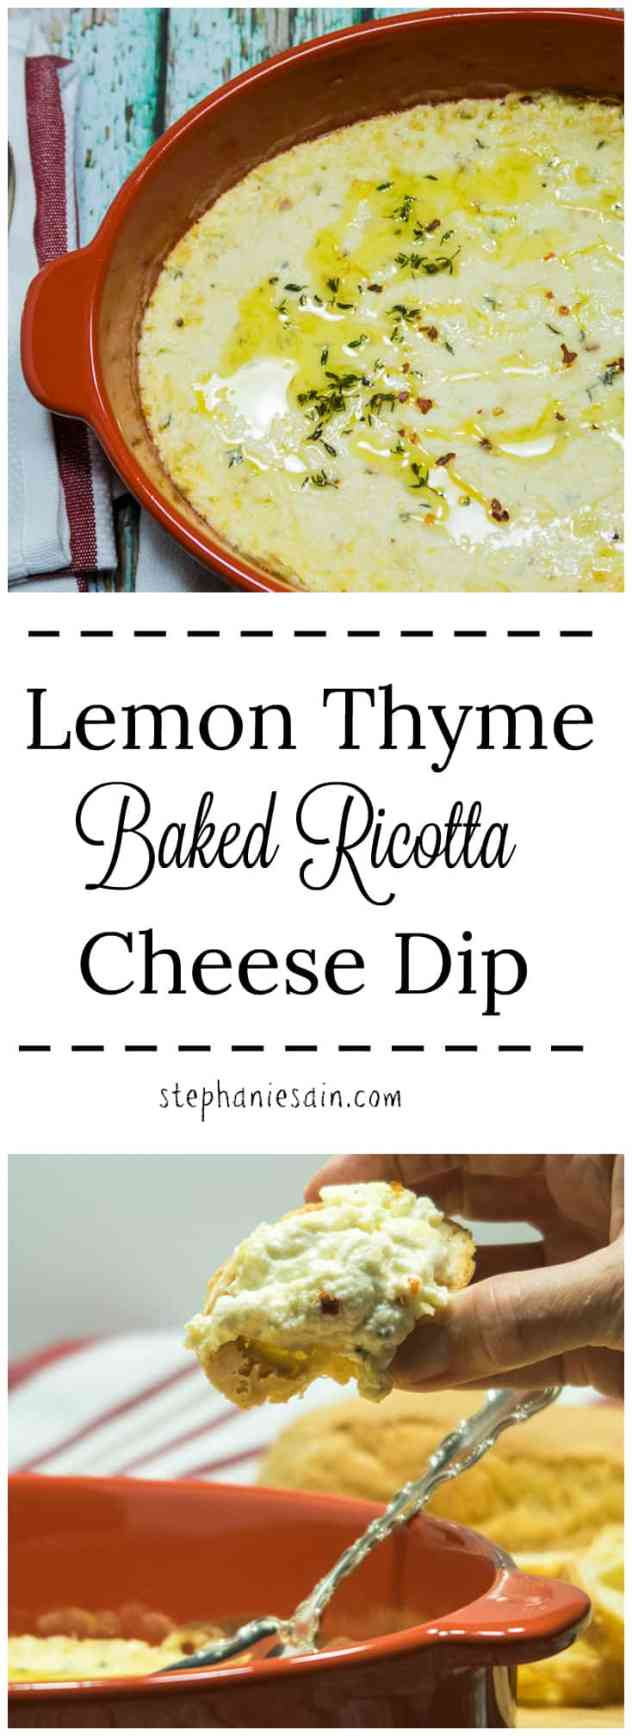 Lemon Thyme Baked Ricotta Cheese Dip is a quick & easy dip that is perfect for entertaining, holidays & date night. Made with easy to find ingredients and great served with crackers, gf bread, & veggies. Gluten free & Vegetarian.